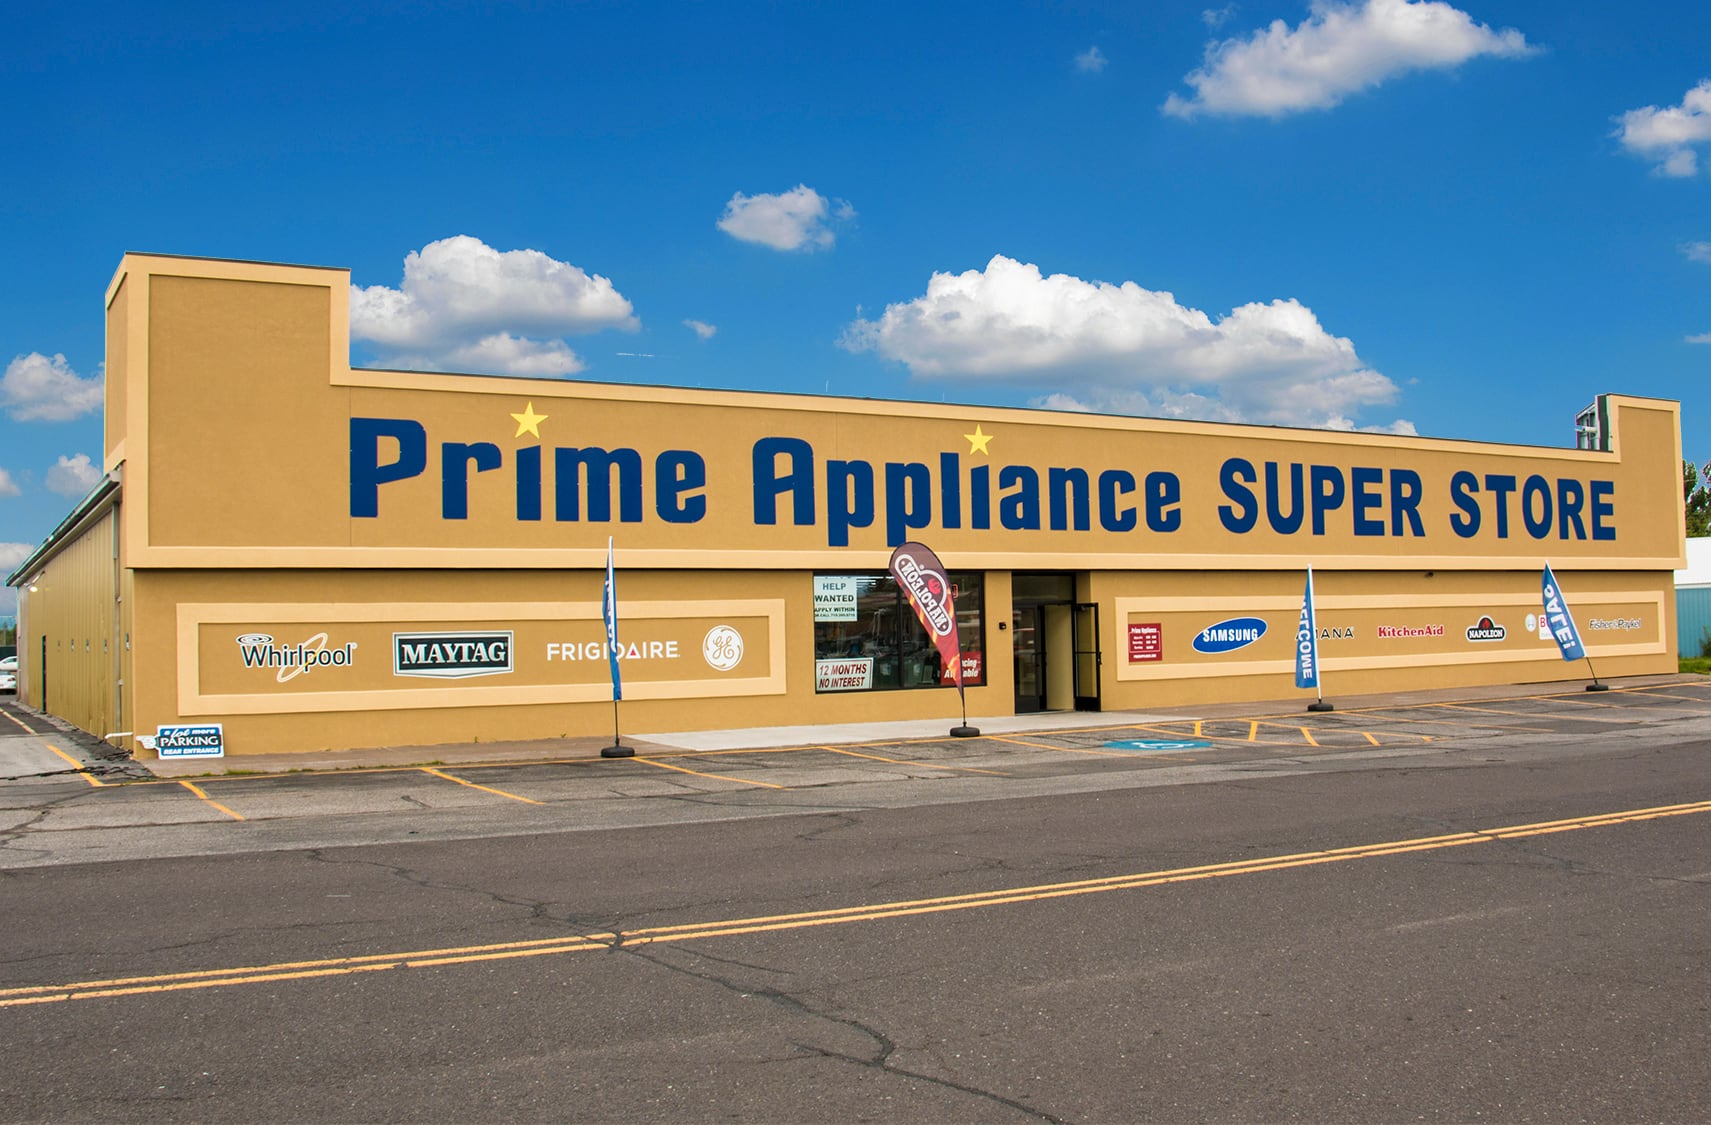 Prime Appliance Store front